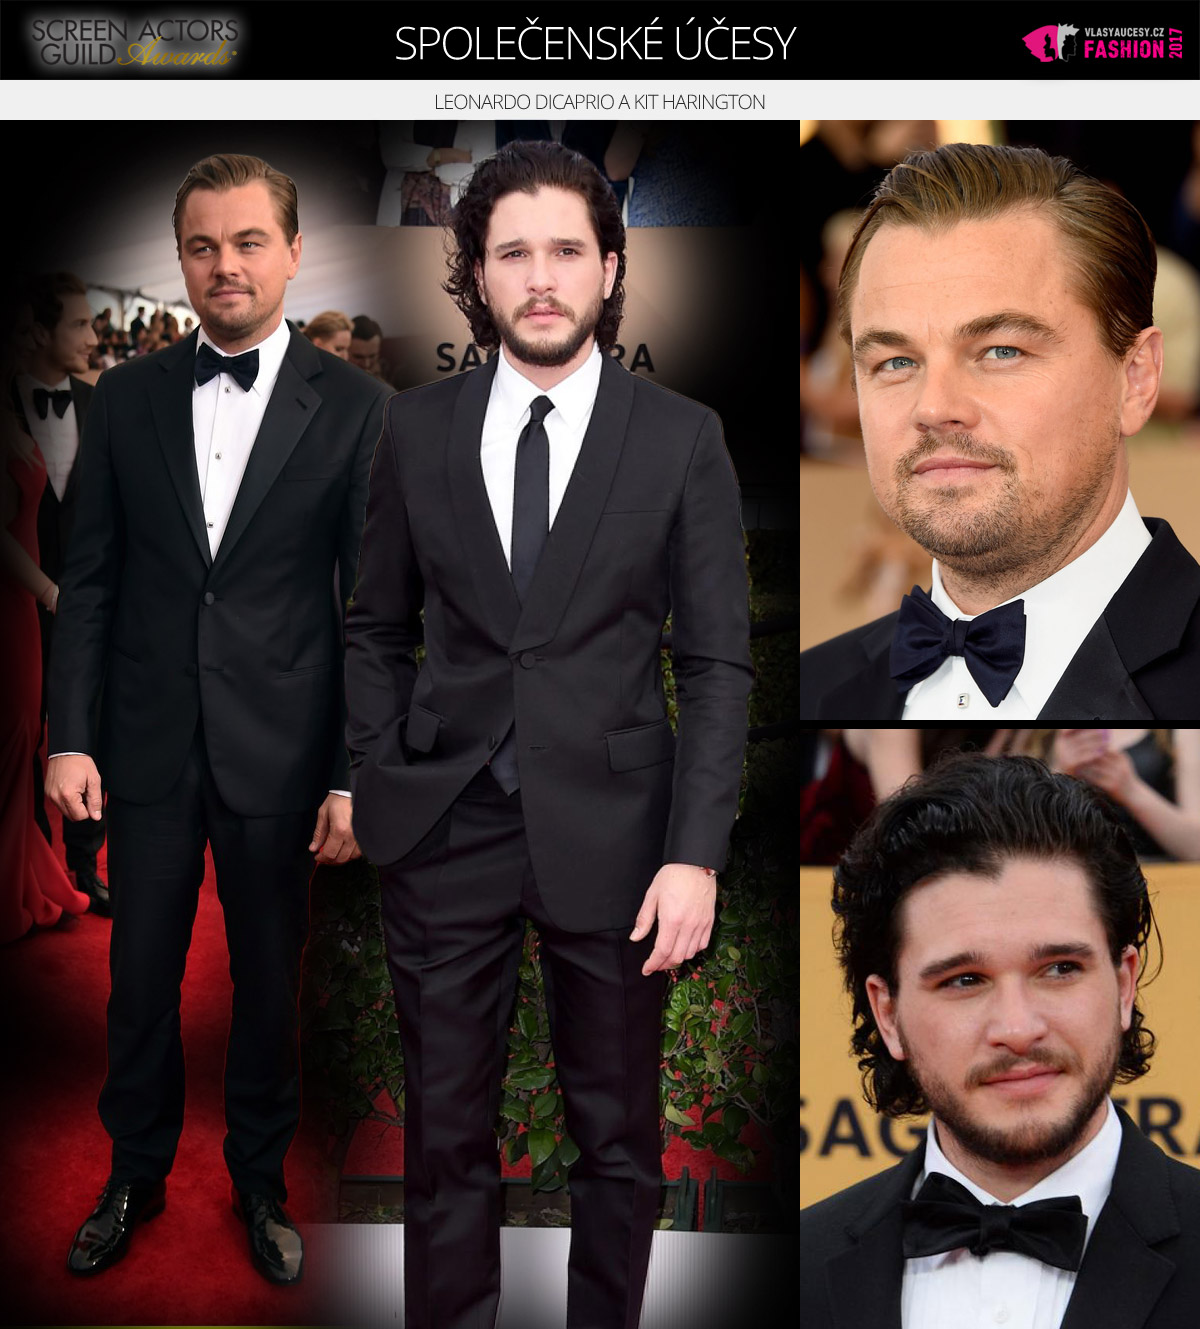 Leonardo DiCaprio a Kit Harington (John Snow z Game Of Thrones)